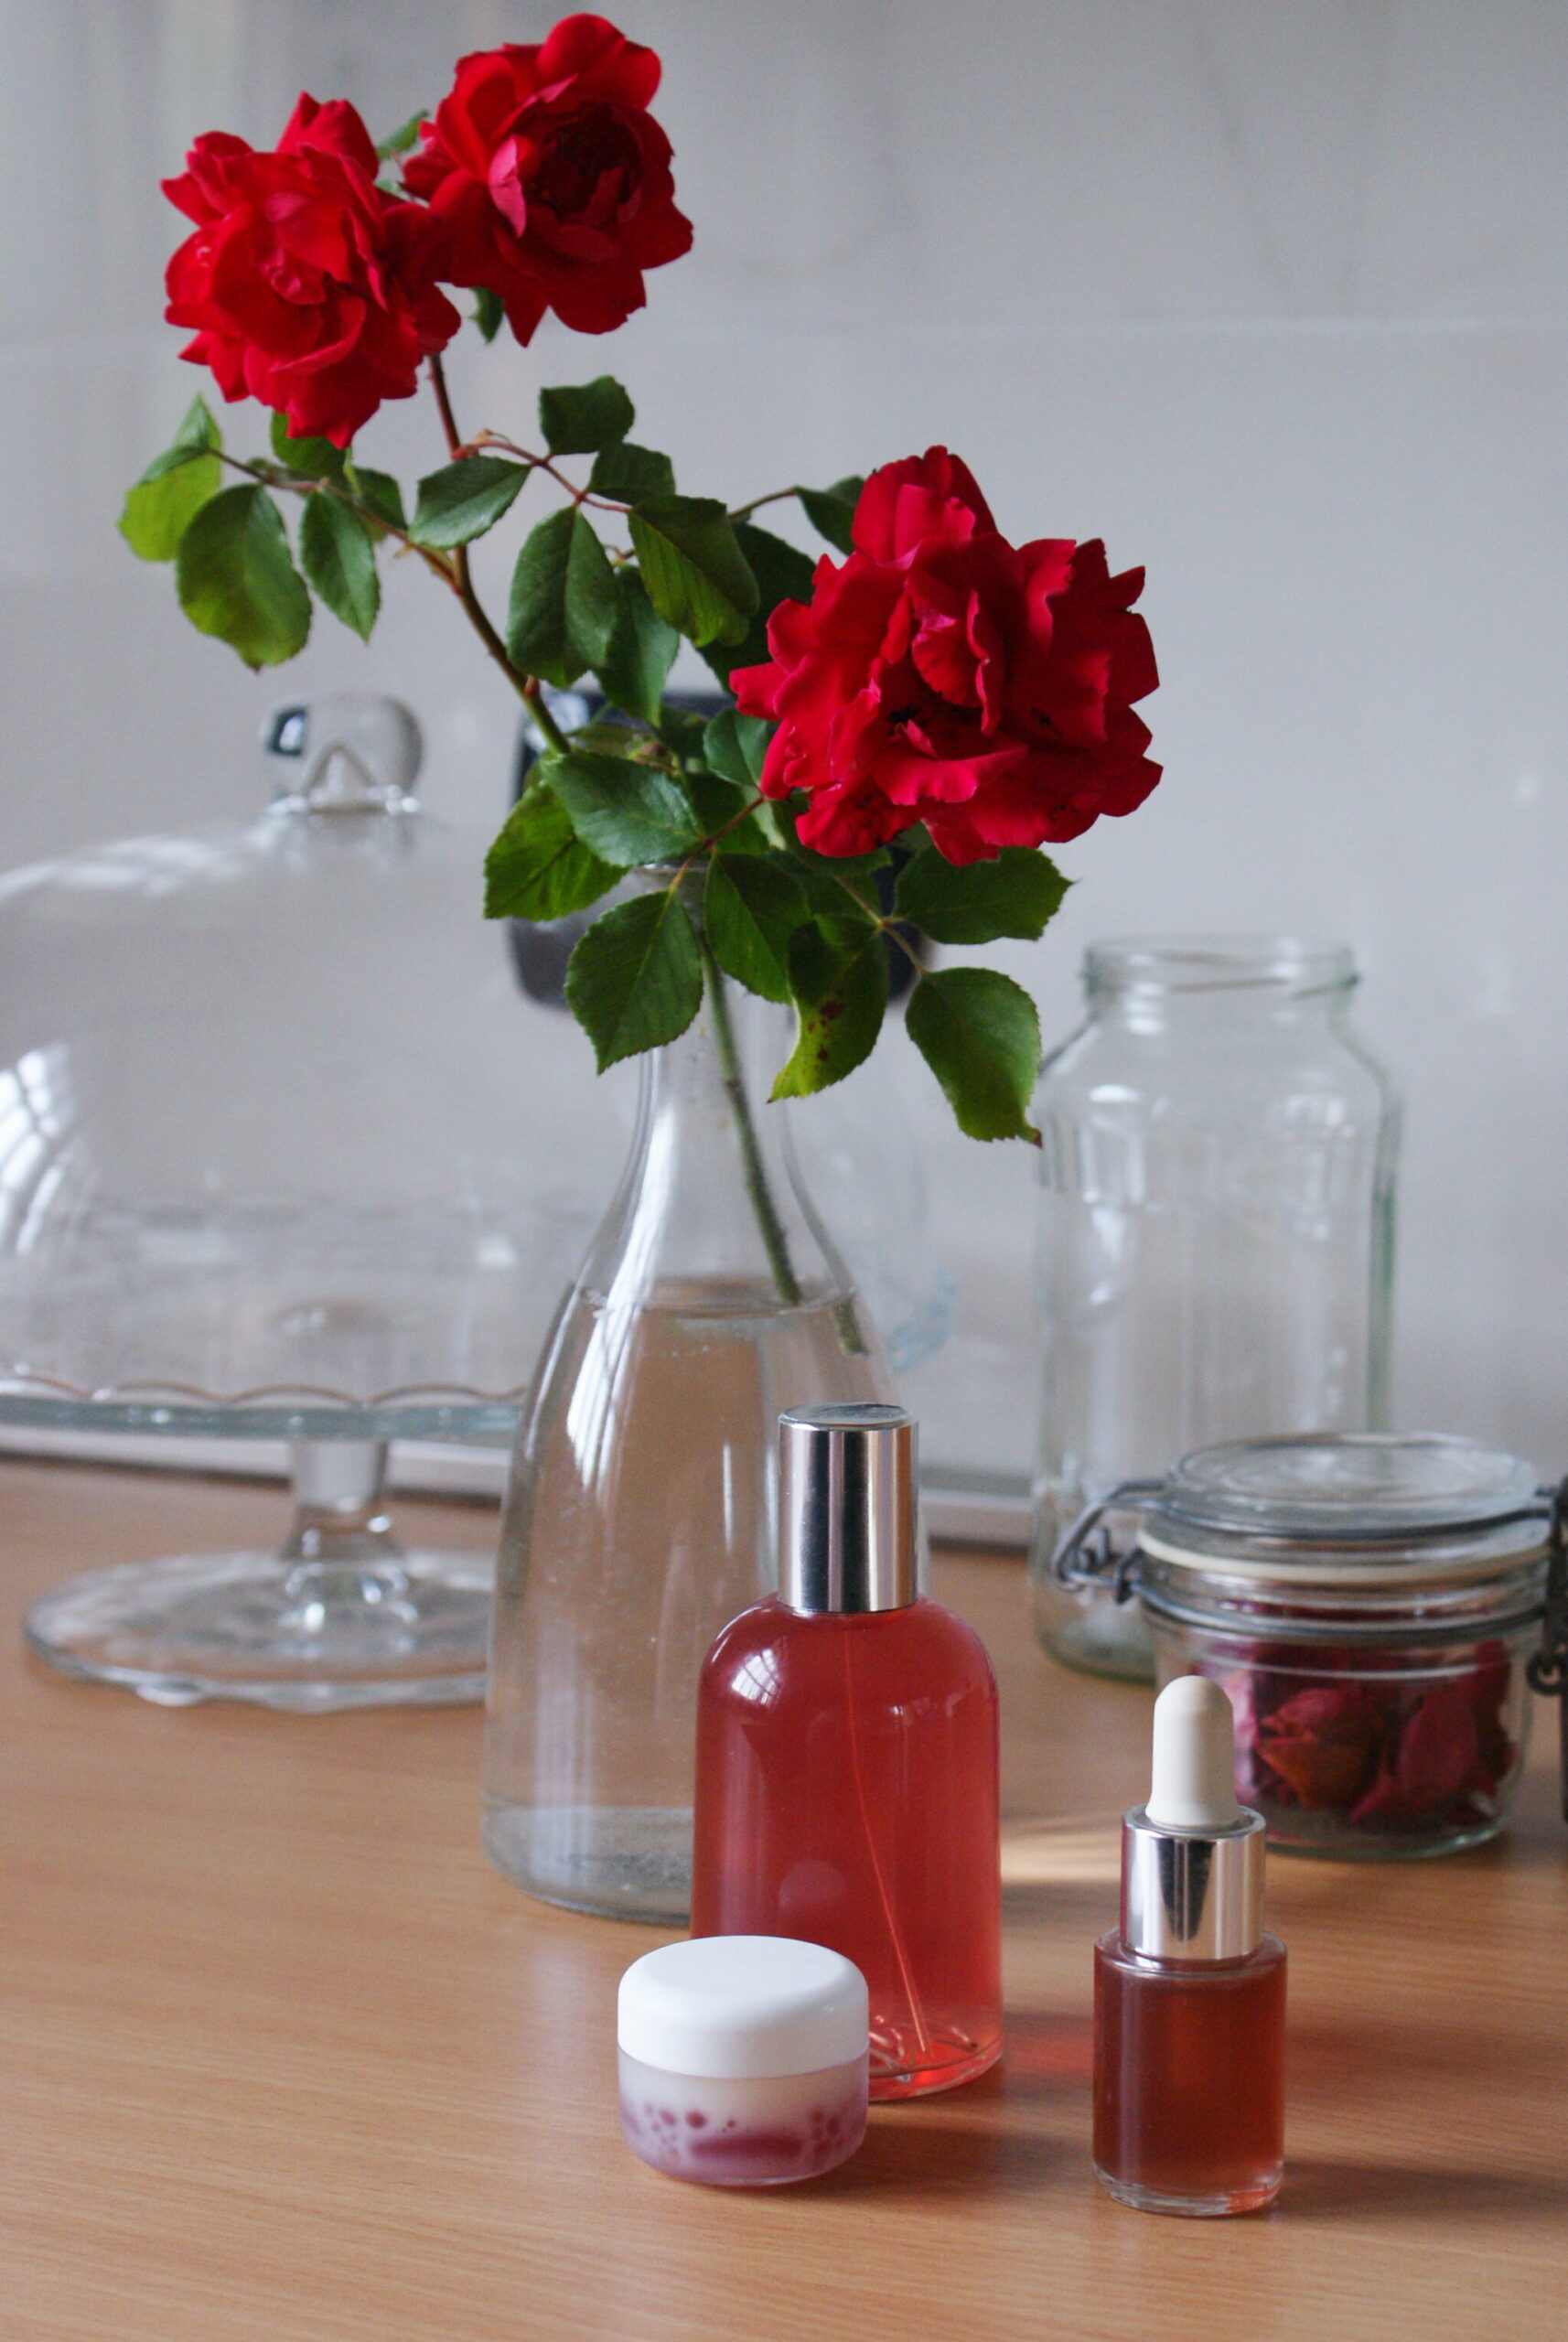 3 diy rose skincare products how make home easy tutorial recipe video francinesplaceblog serum water lip balm